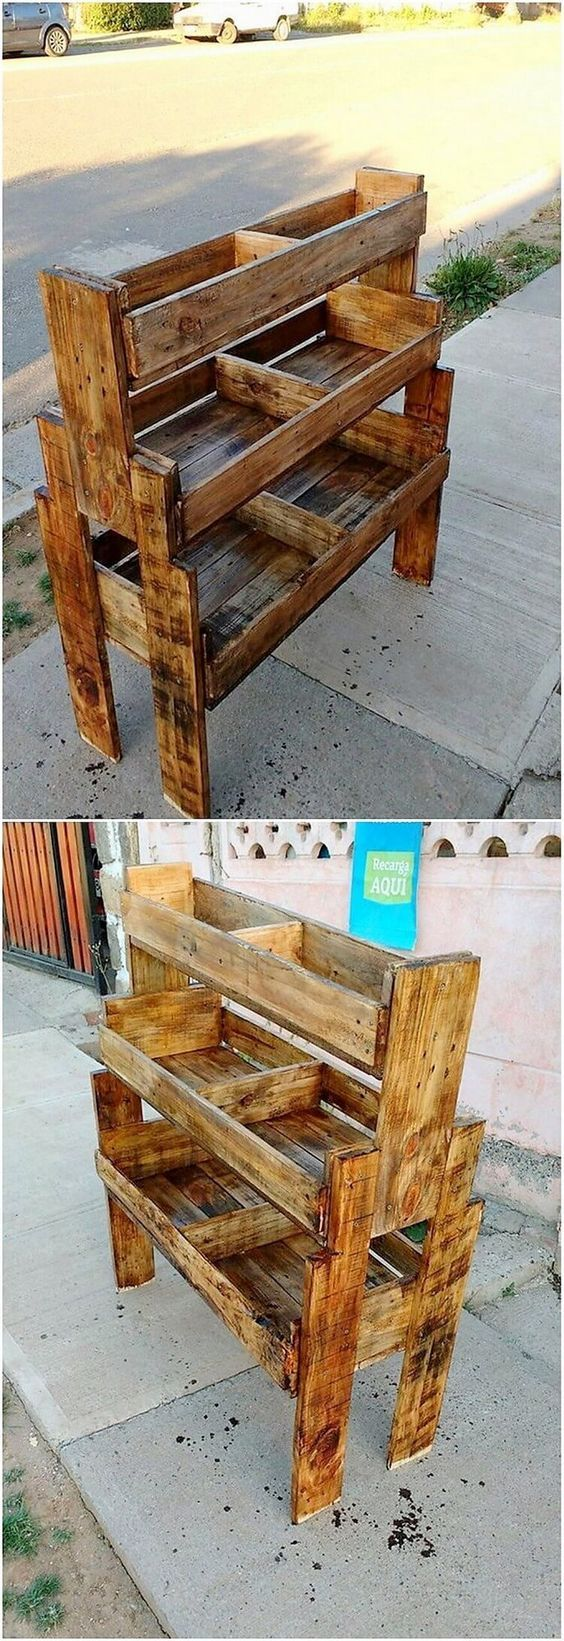 Charming and Inspiring Ideas for Wood Pallets Reusing